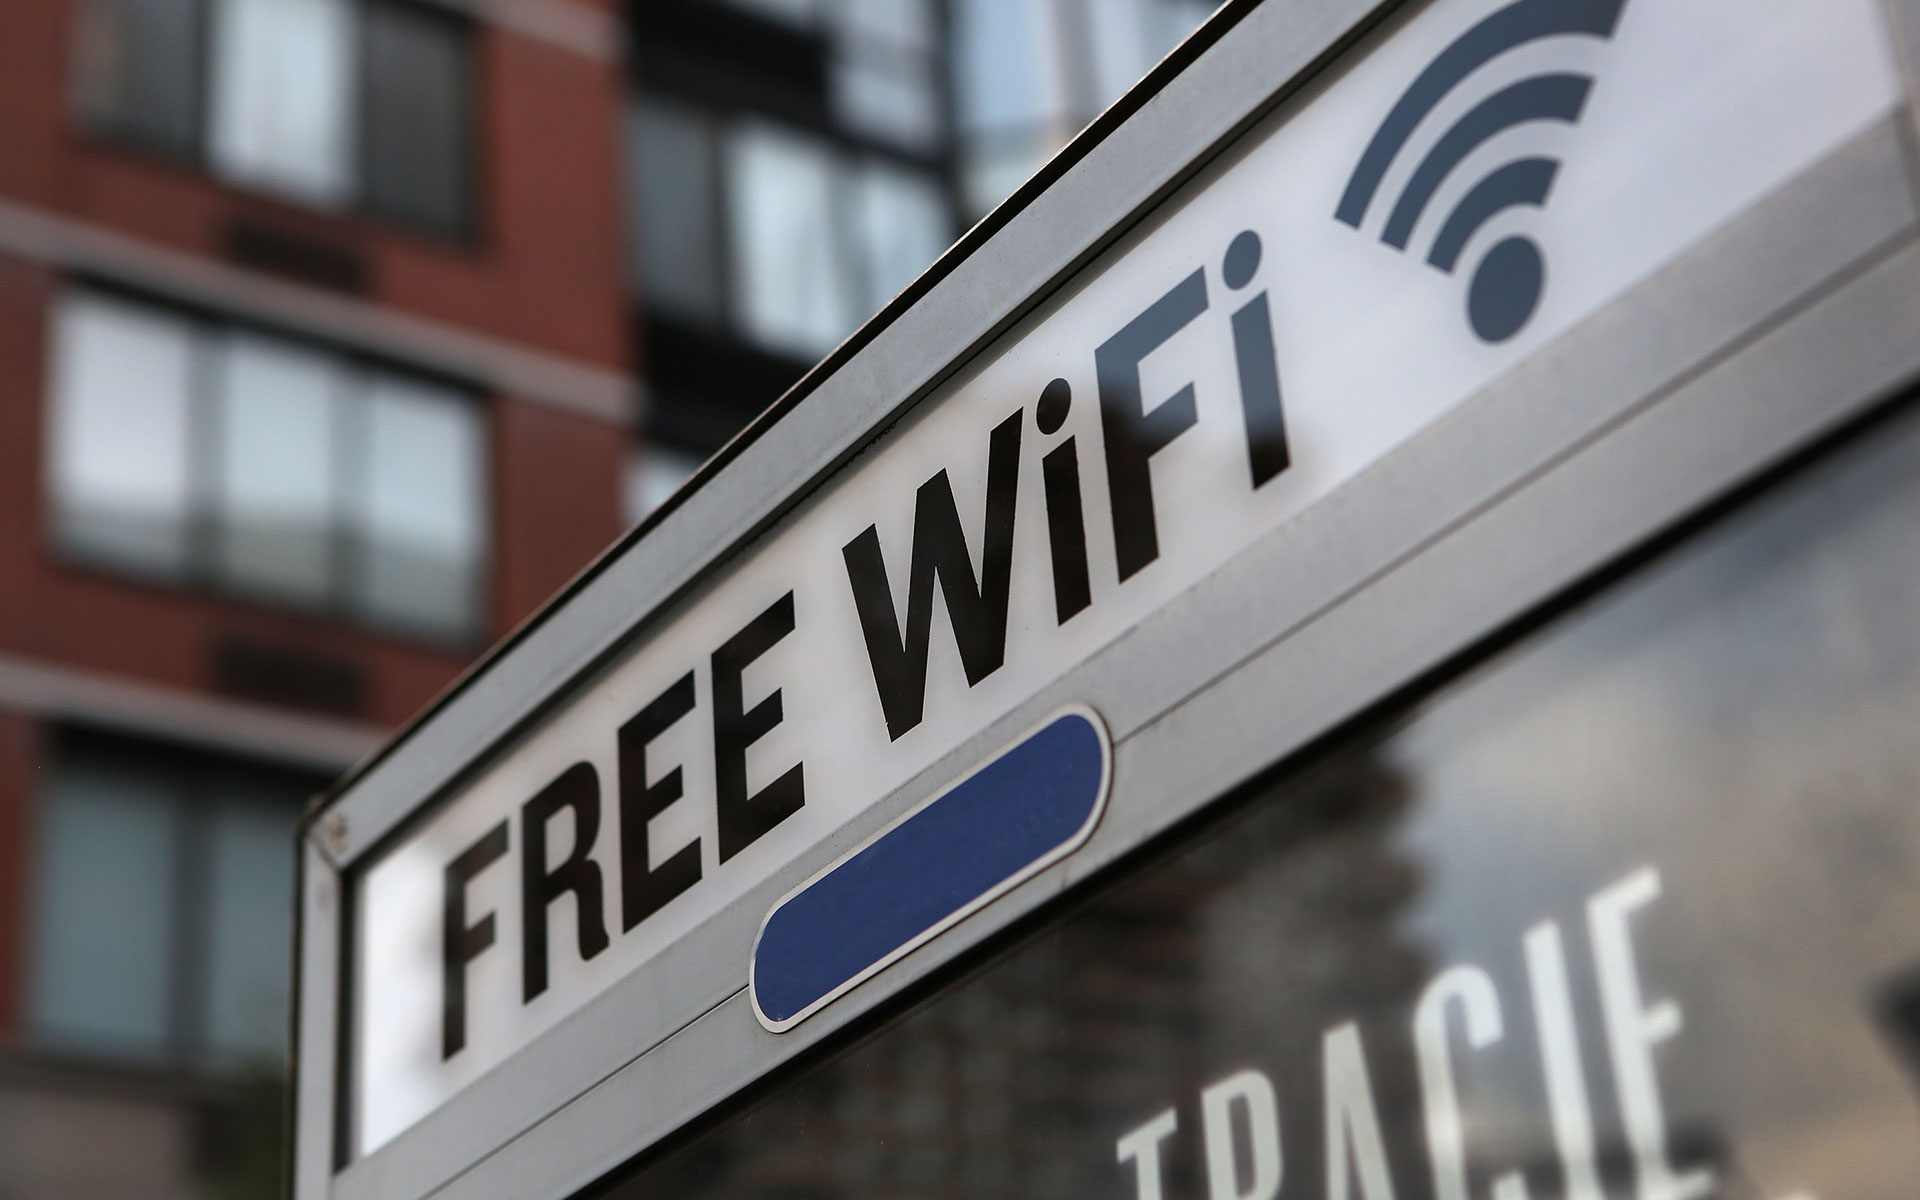 There is free Wi-Fi at Danang International Airport